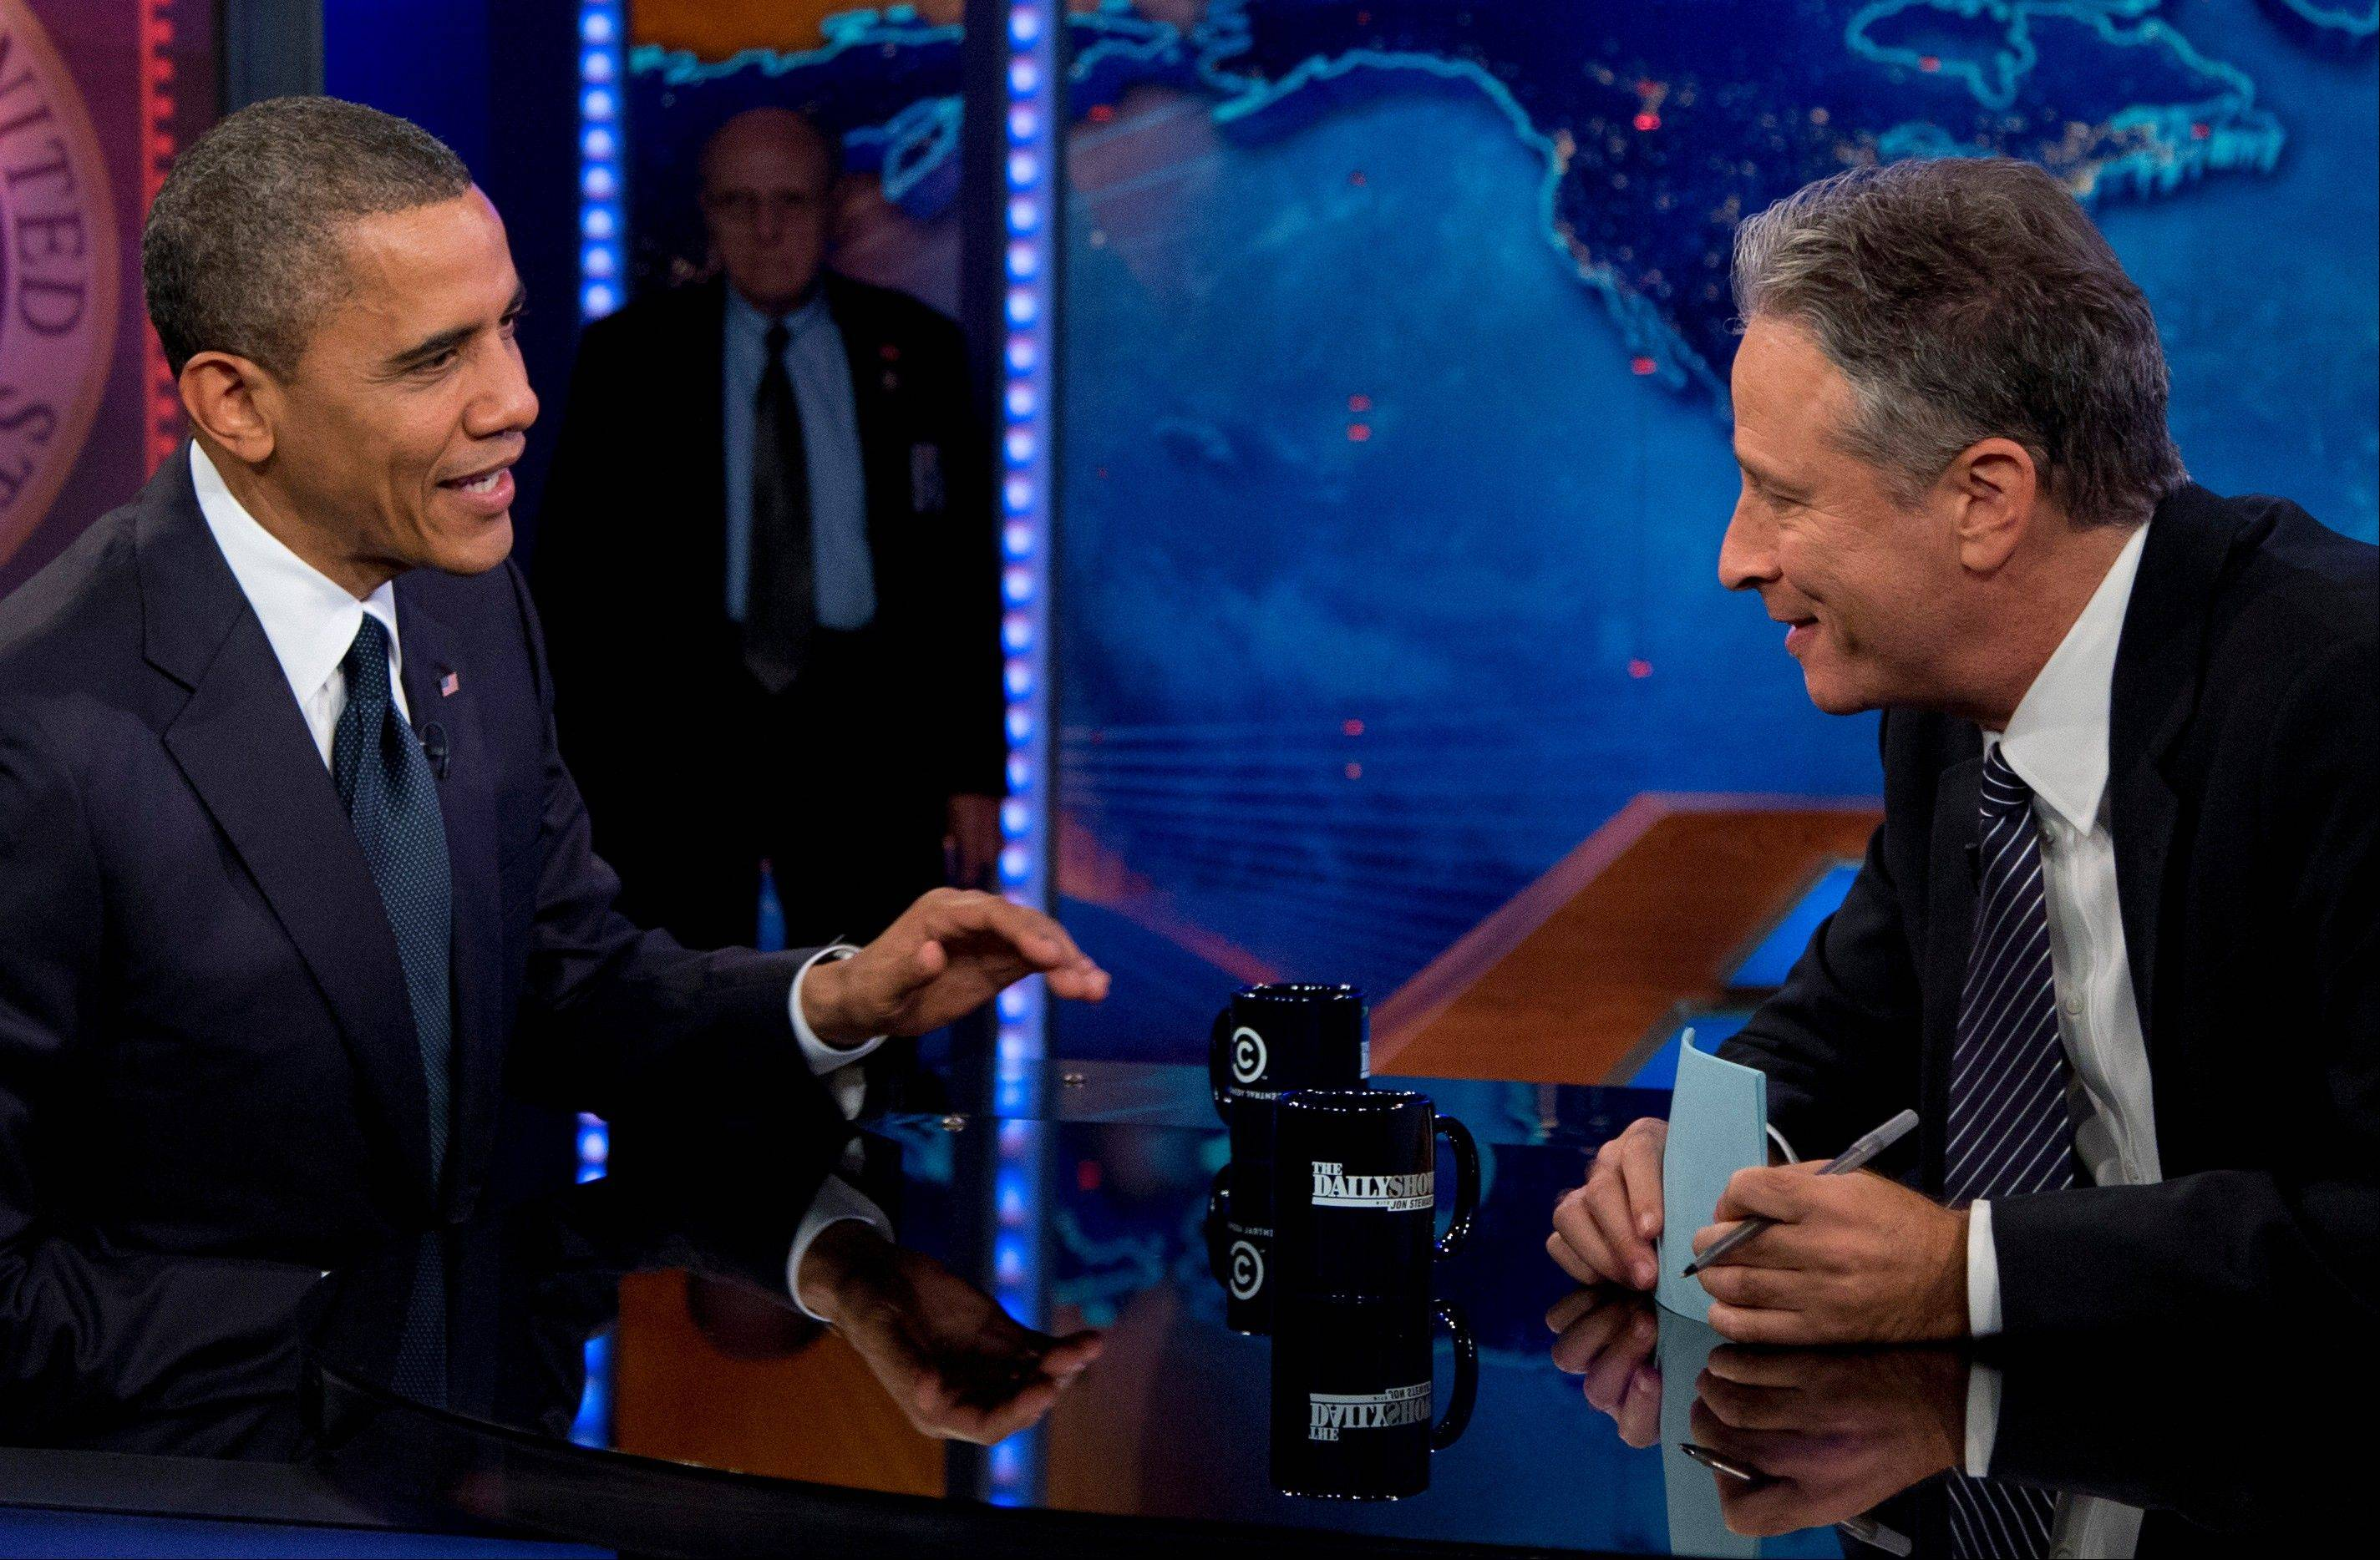 President Barack Obama talks with Jon Stewart during a taping of his appearance on �The Daily Show with John Stewart�, Thursday, Oct. 18, 2012, in New York.